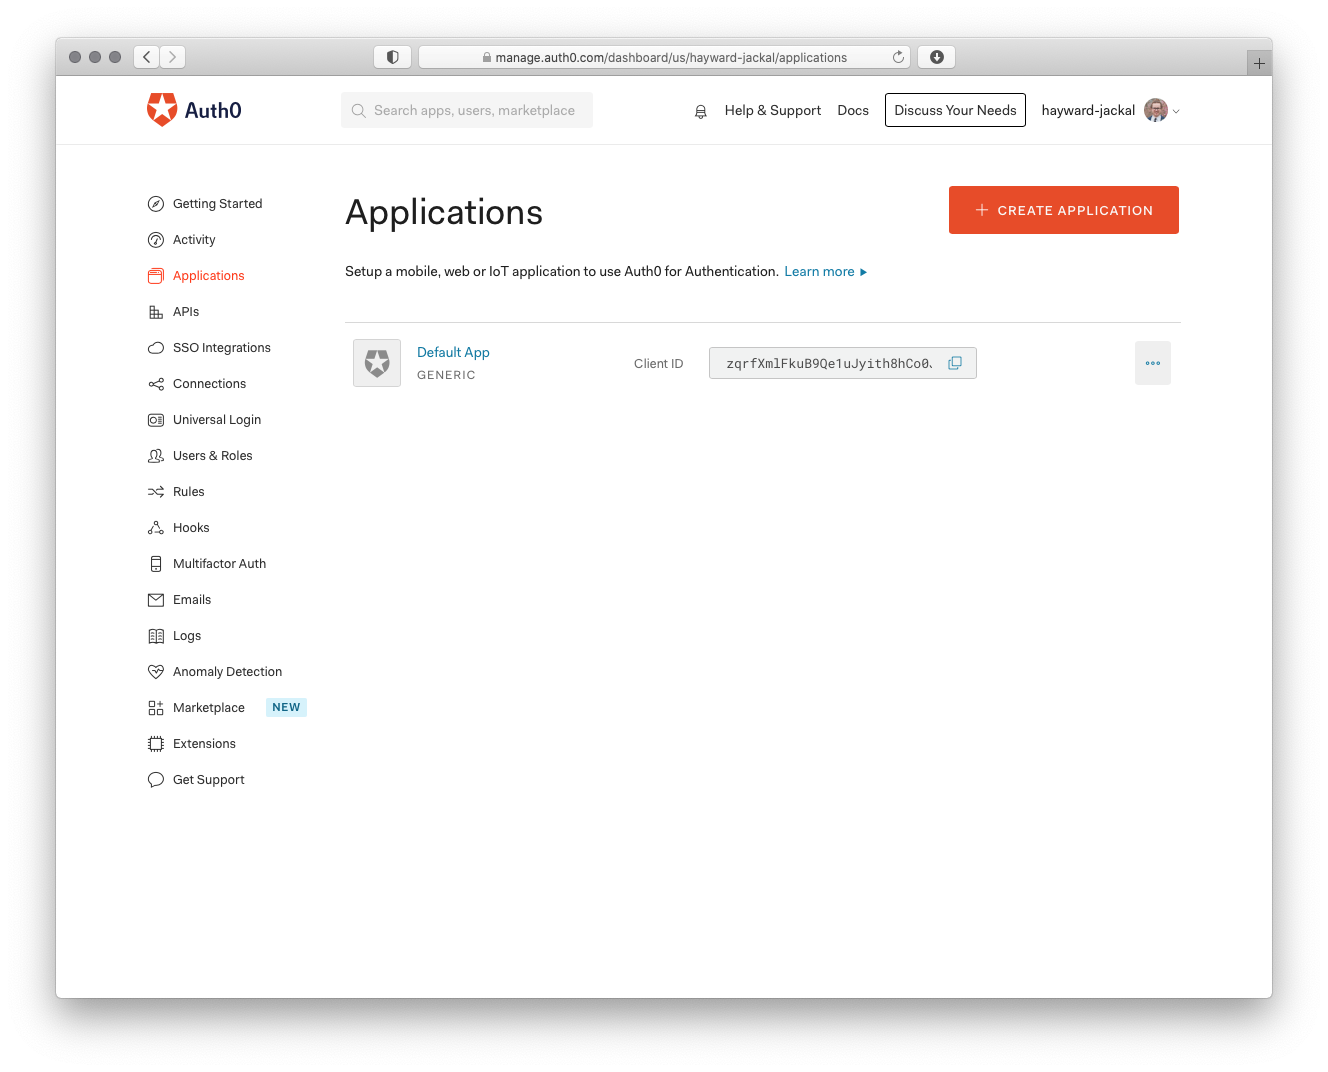 Auth0 Applications Dashboard